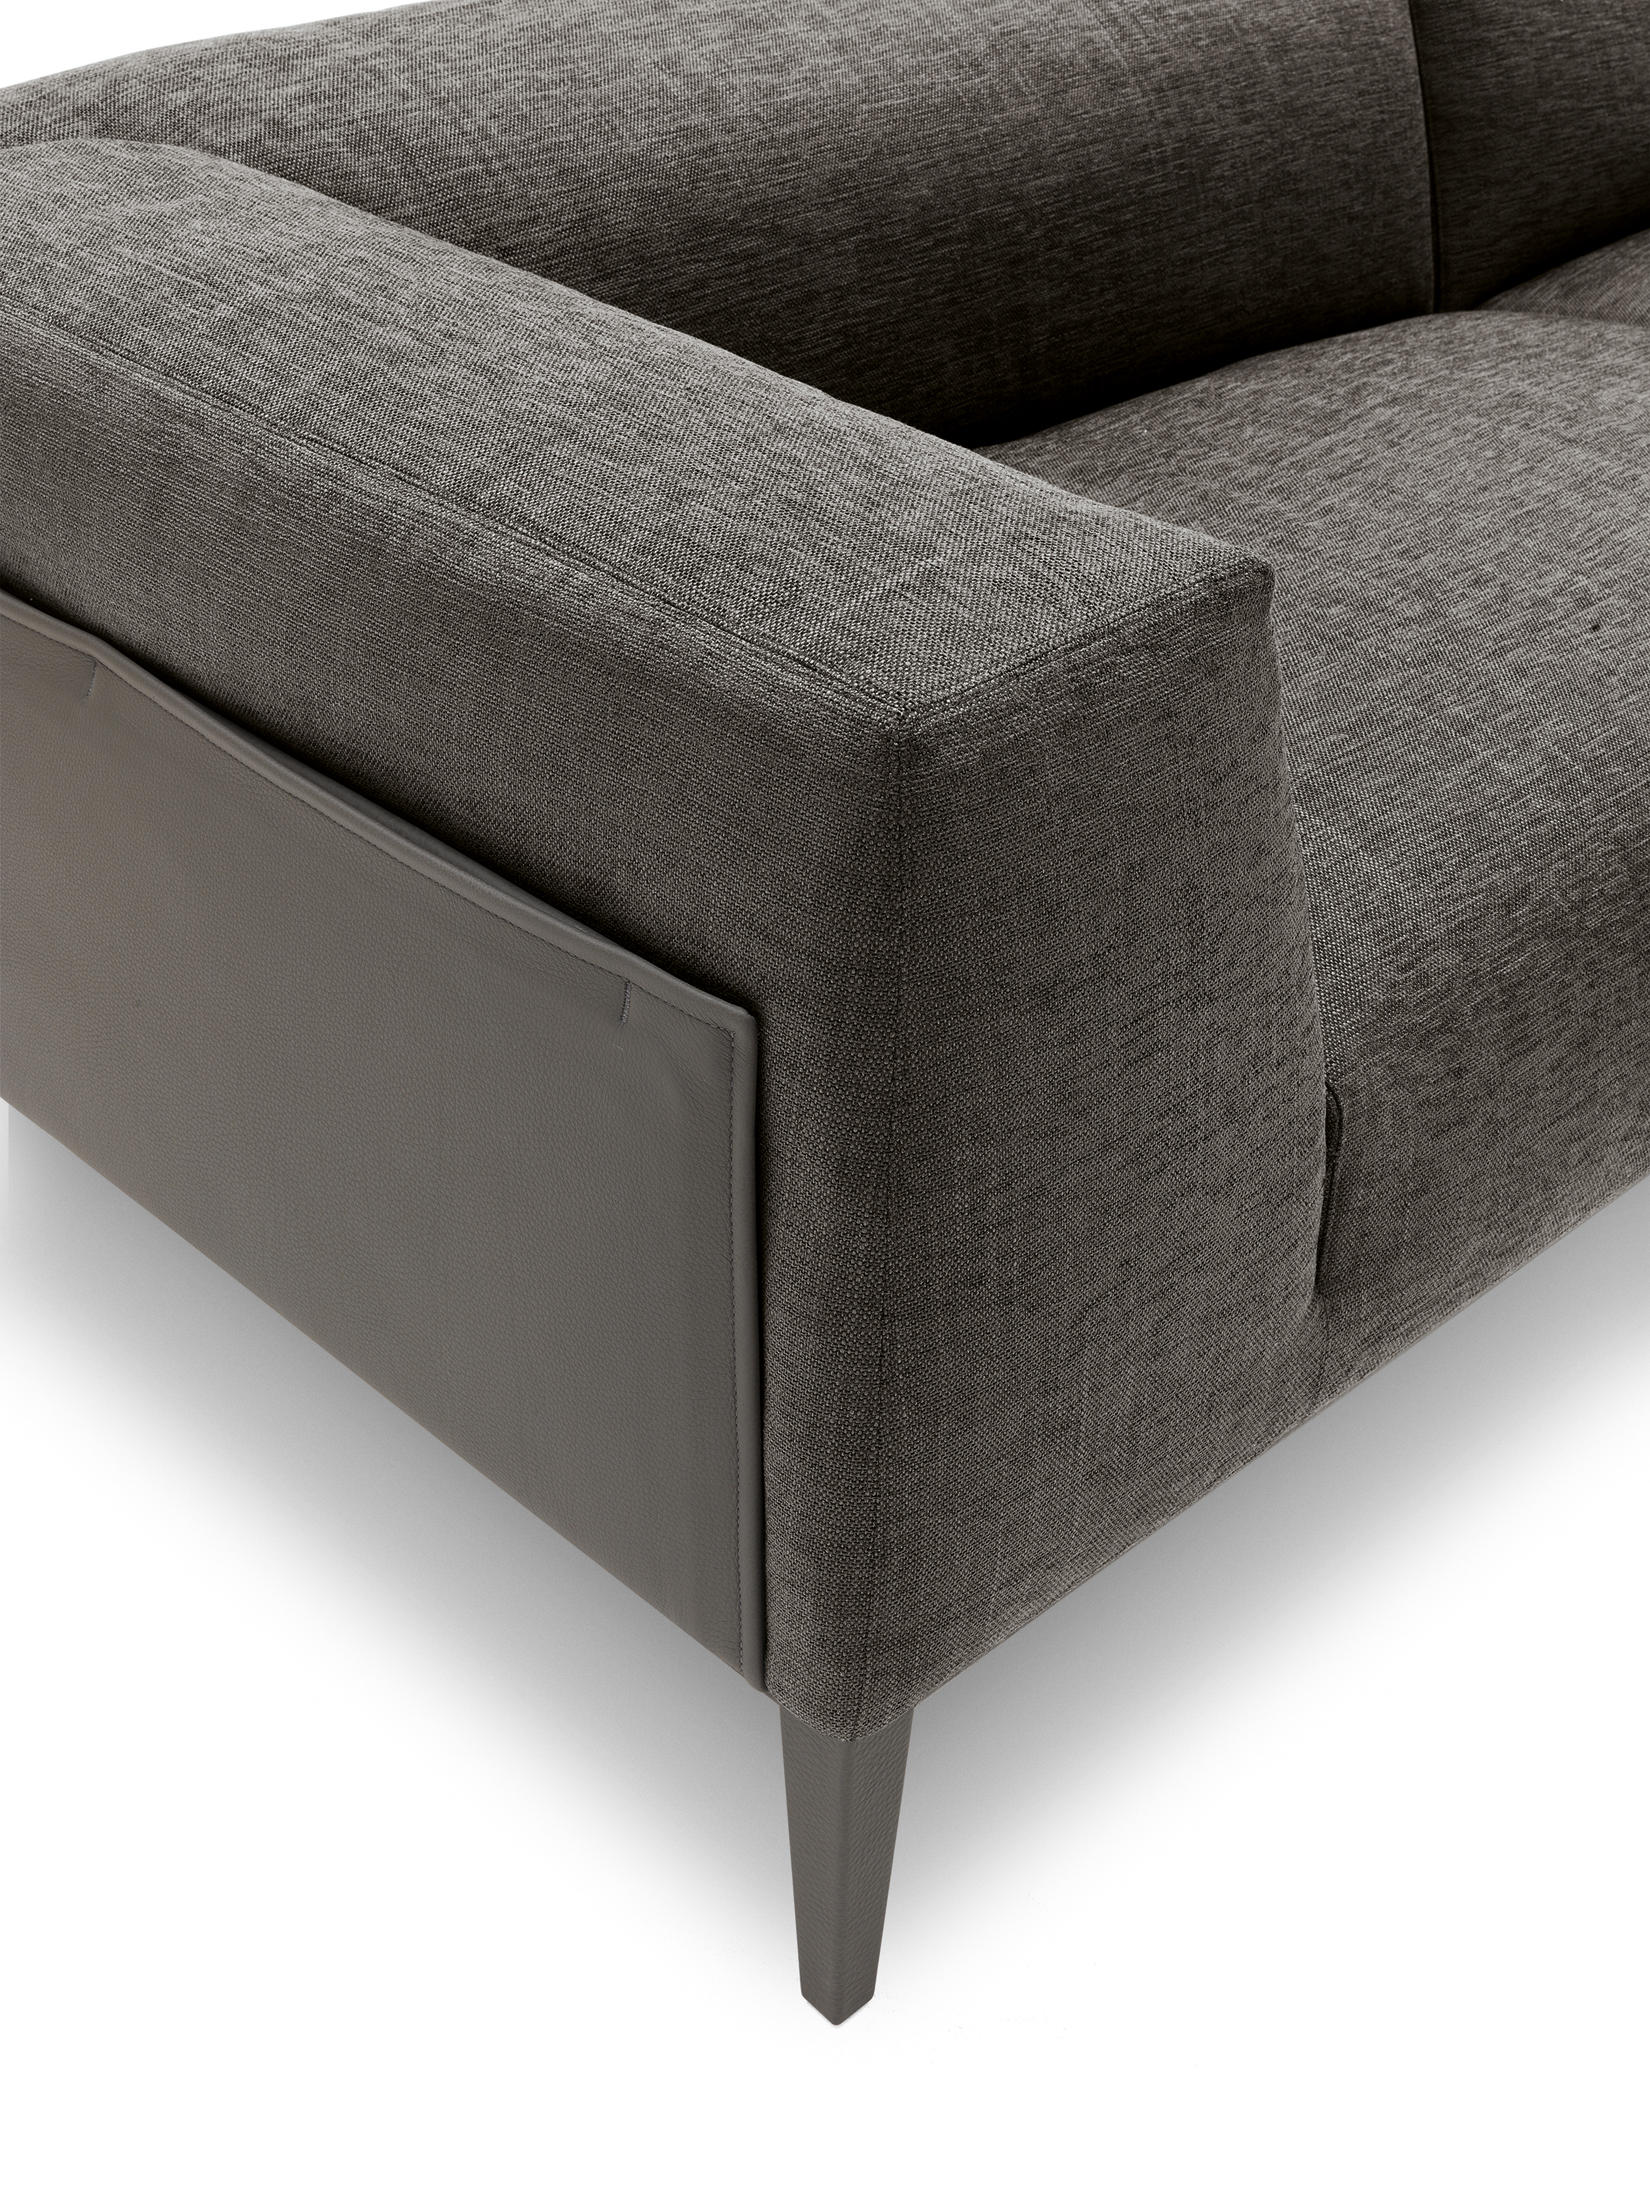 leather sofa manufacturers italy bed free delivery london metropolitan - sofas from poliform | architonic